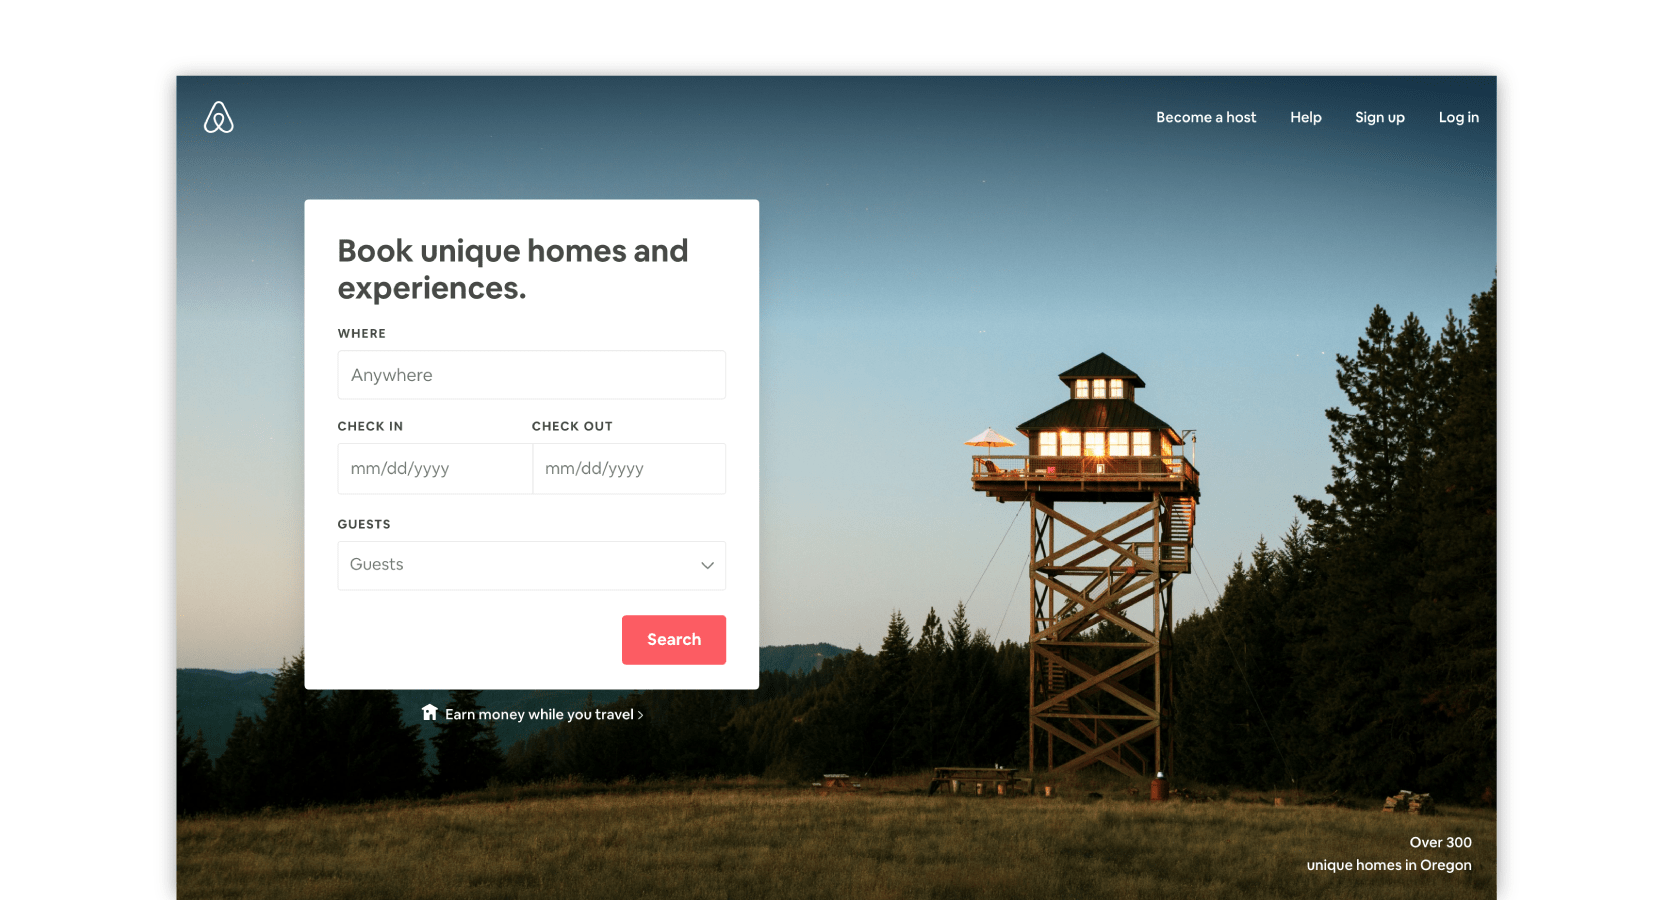 Airbnb's homepage uses UI design patterns successfully.